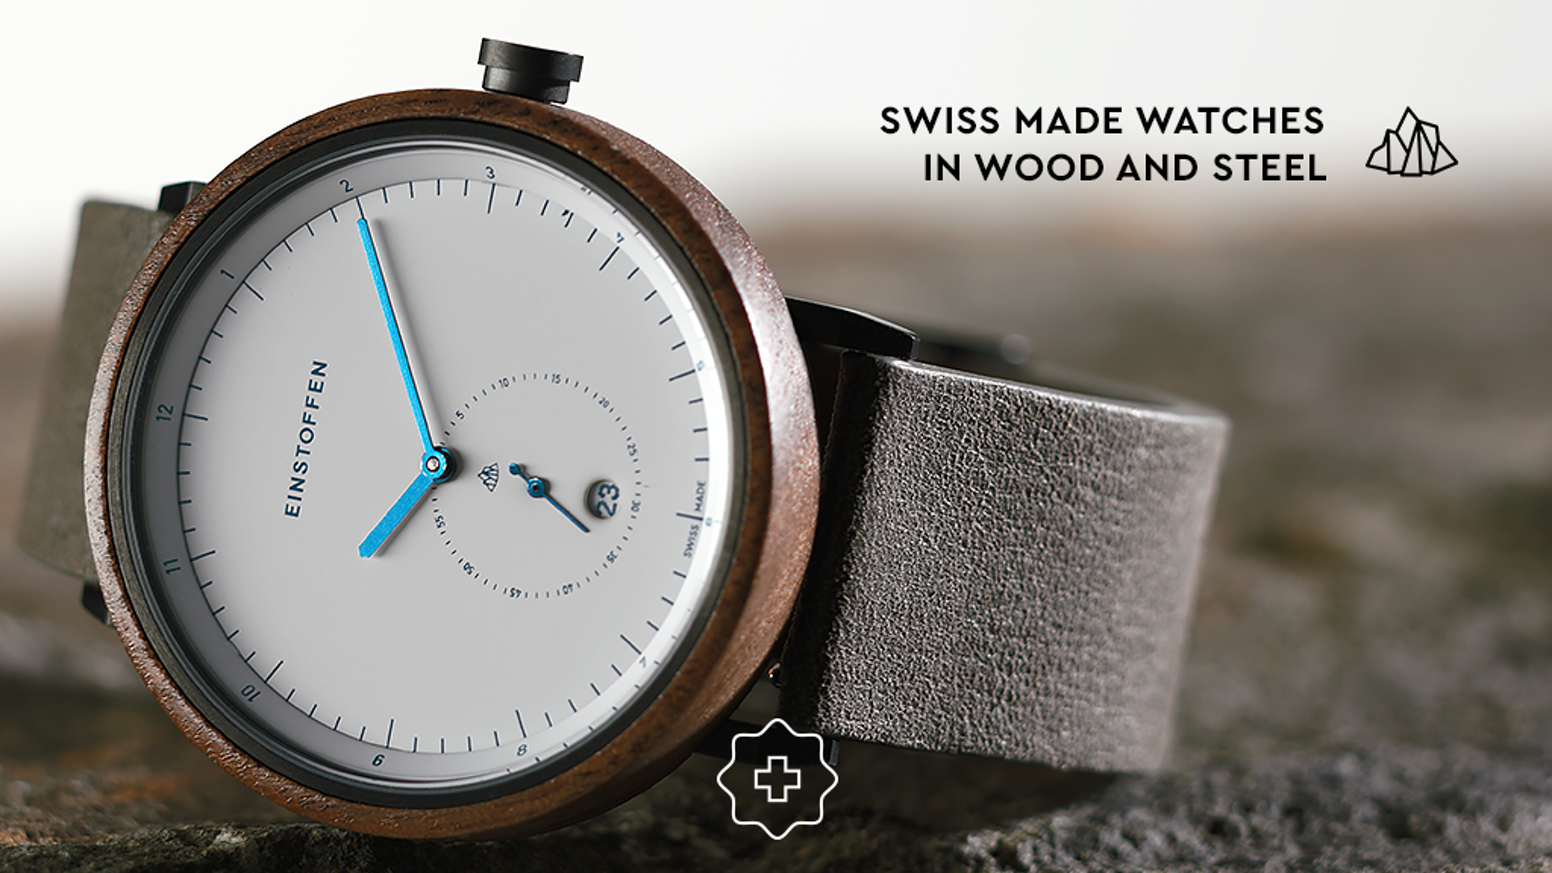 Einstoffen swiss made watches in wood and steel by einstoffen kickstarter for Swiss made watches